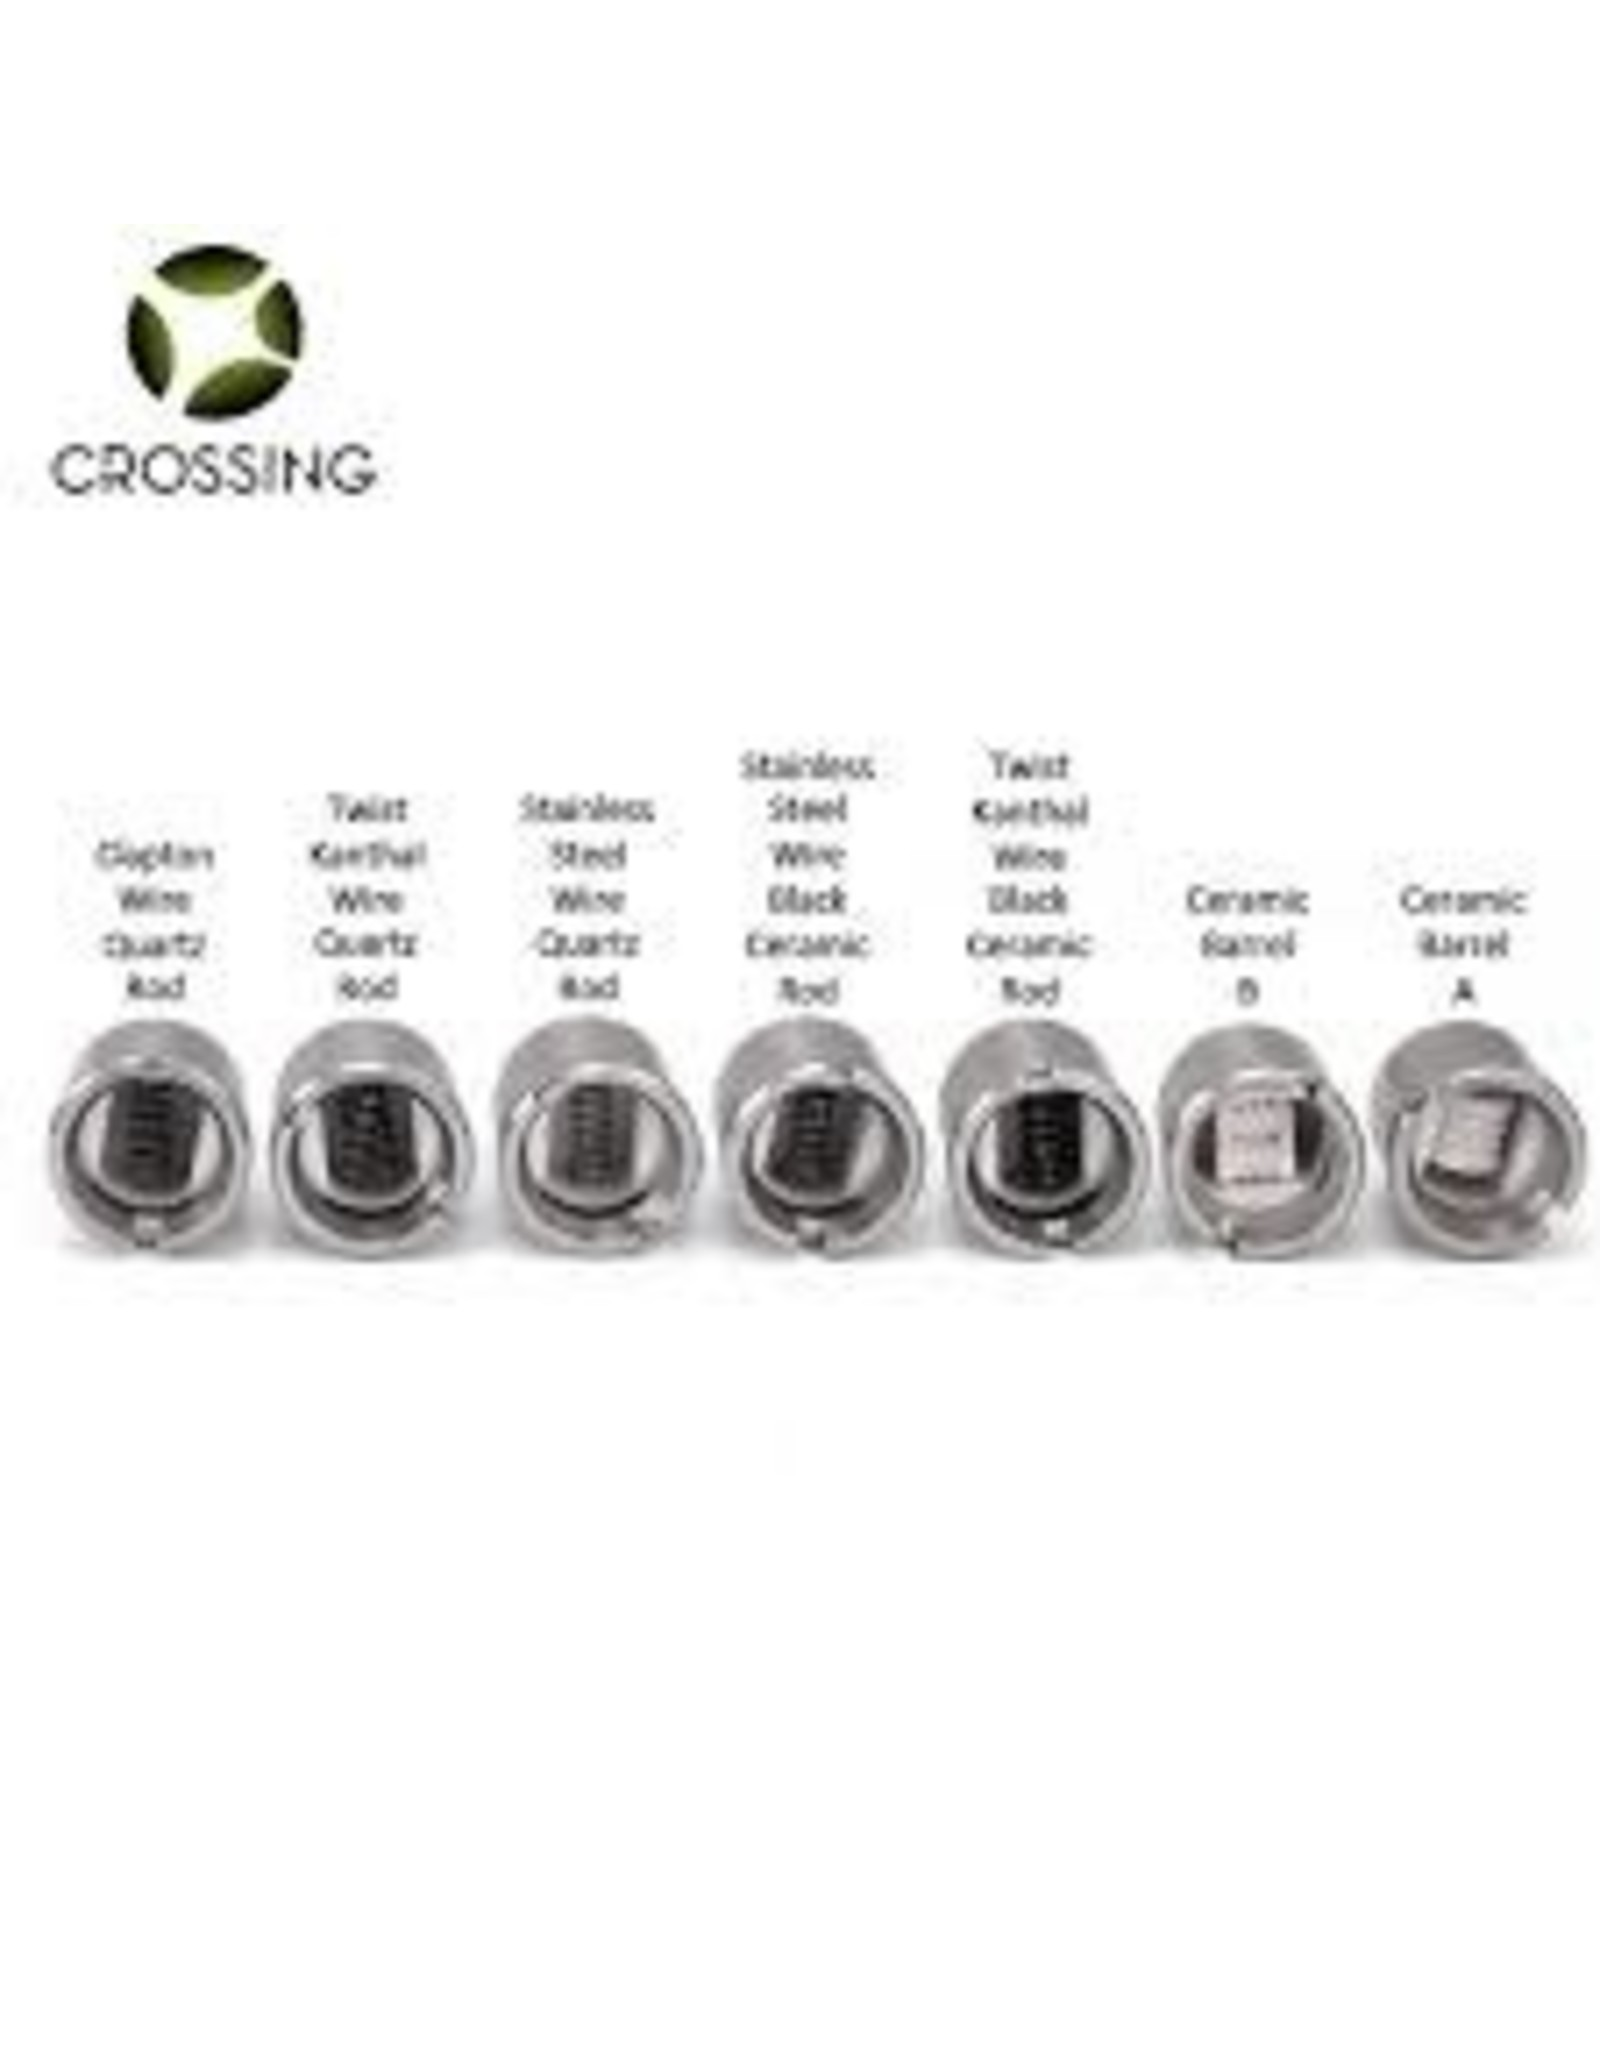 CROSSING CROSSING SAI DUAL KANTHAL WIRE 4MM QUARTZ ROD